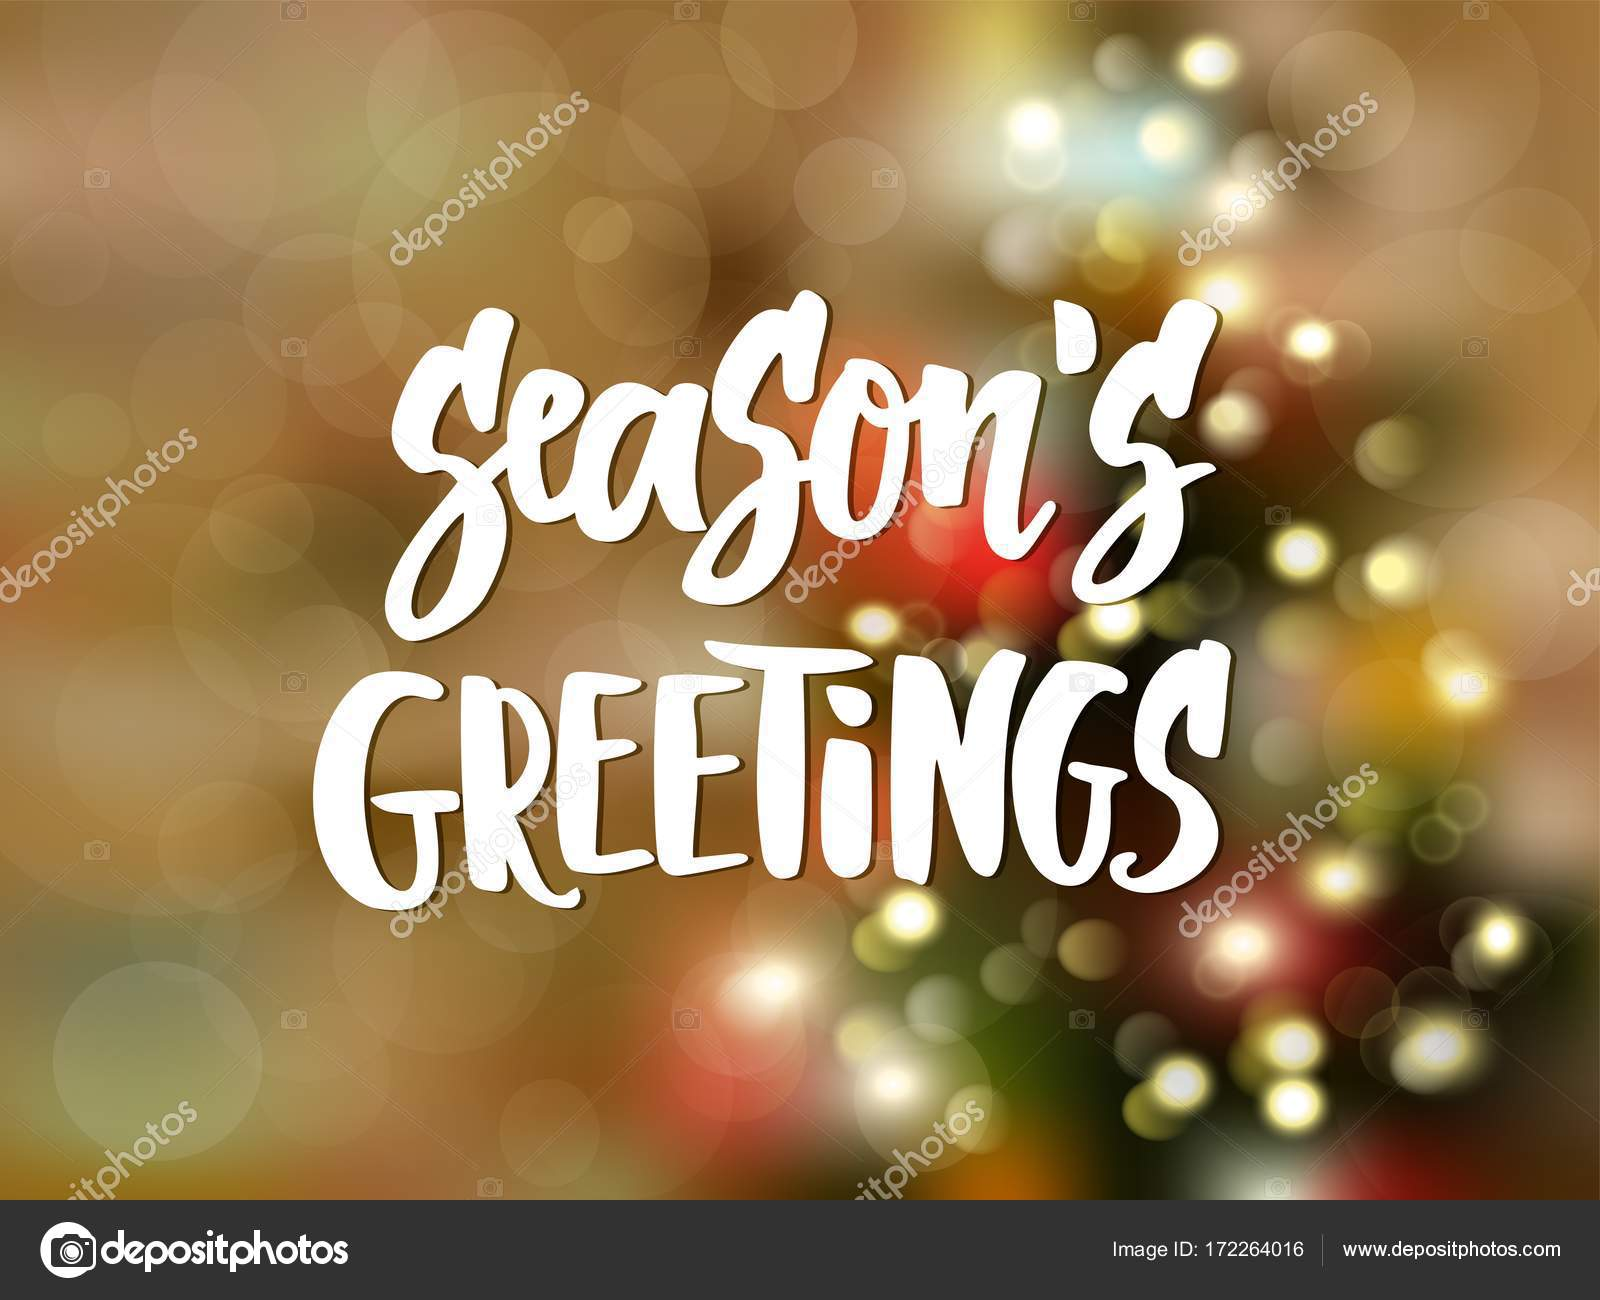 Seasons greetings text hand drawn lettering holiday greetings seasons greetings text hand drawn lettering holiday greetings quote blurred background with christmas m4hsunfo